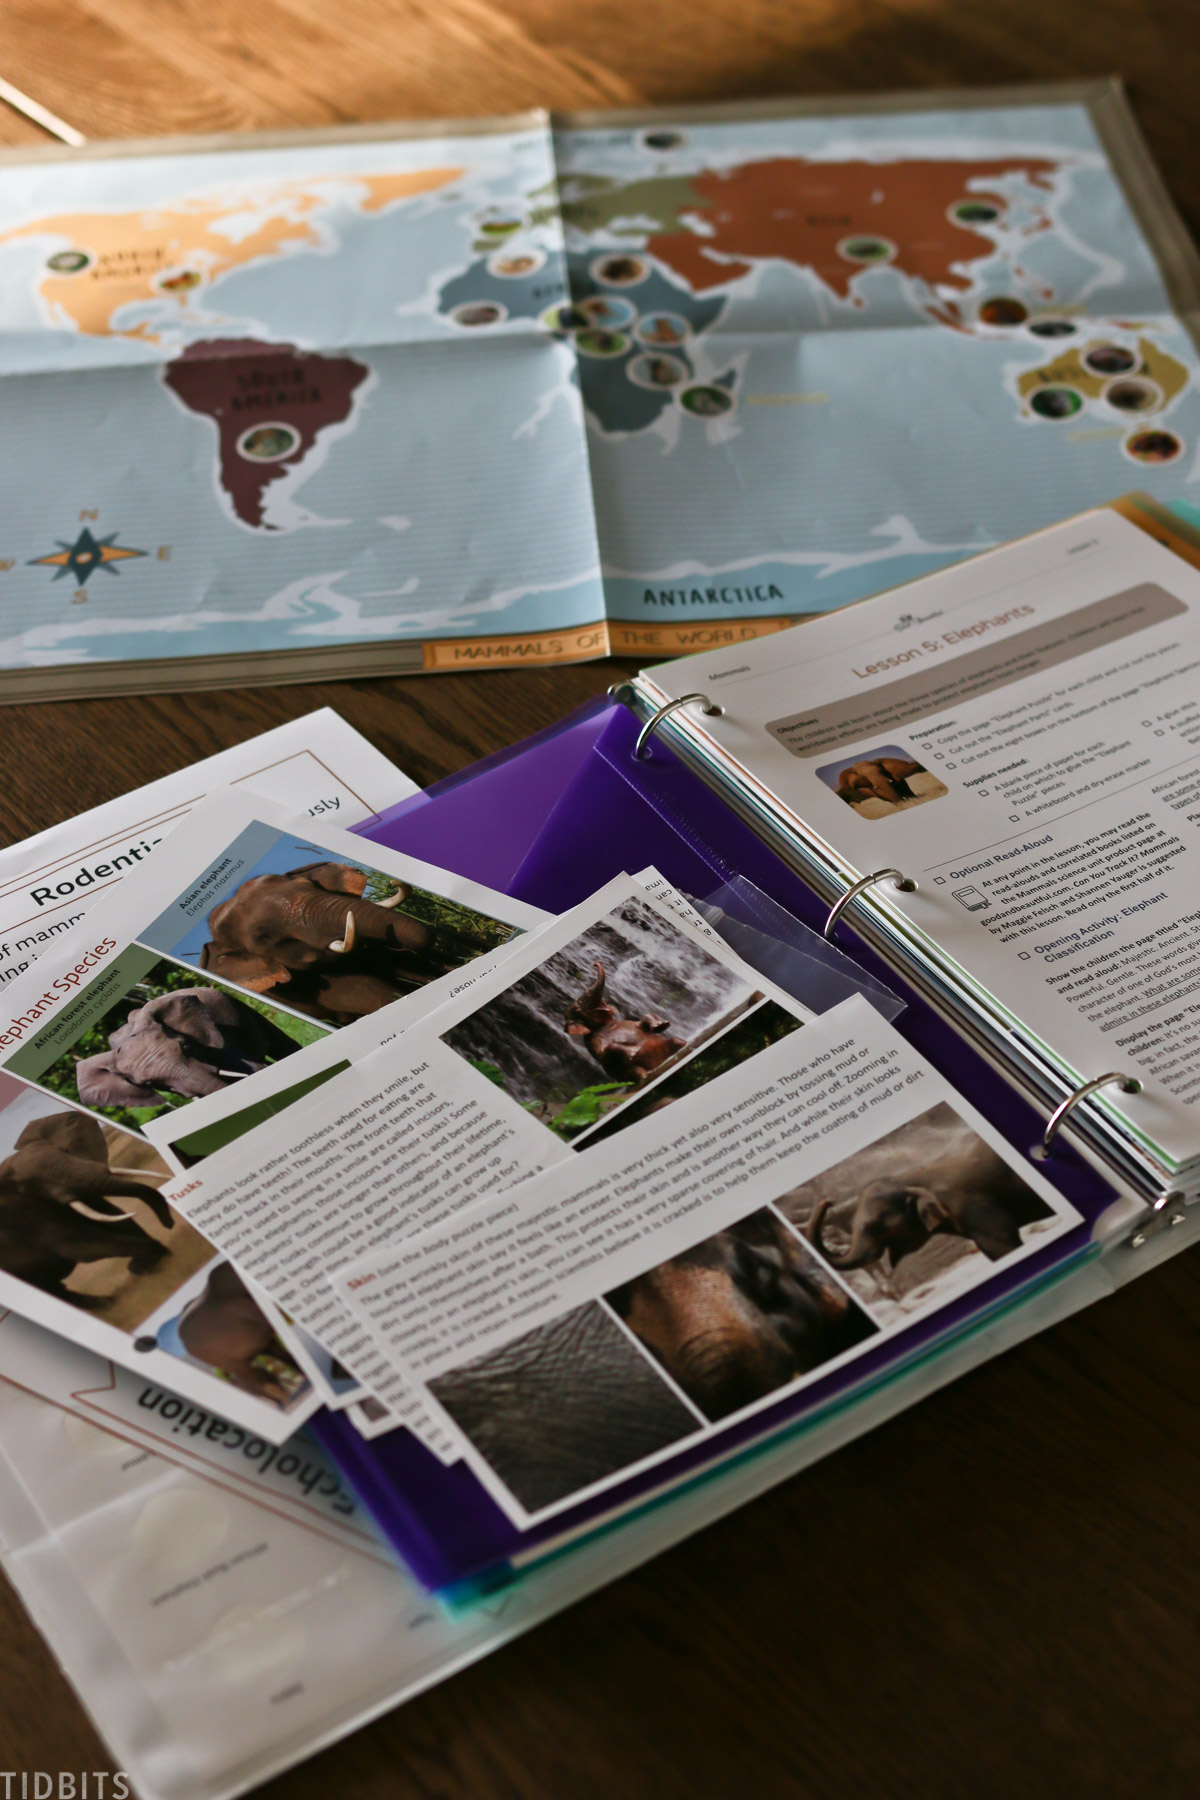 binder for homeschooling filled with educational information on elephants with world map in background